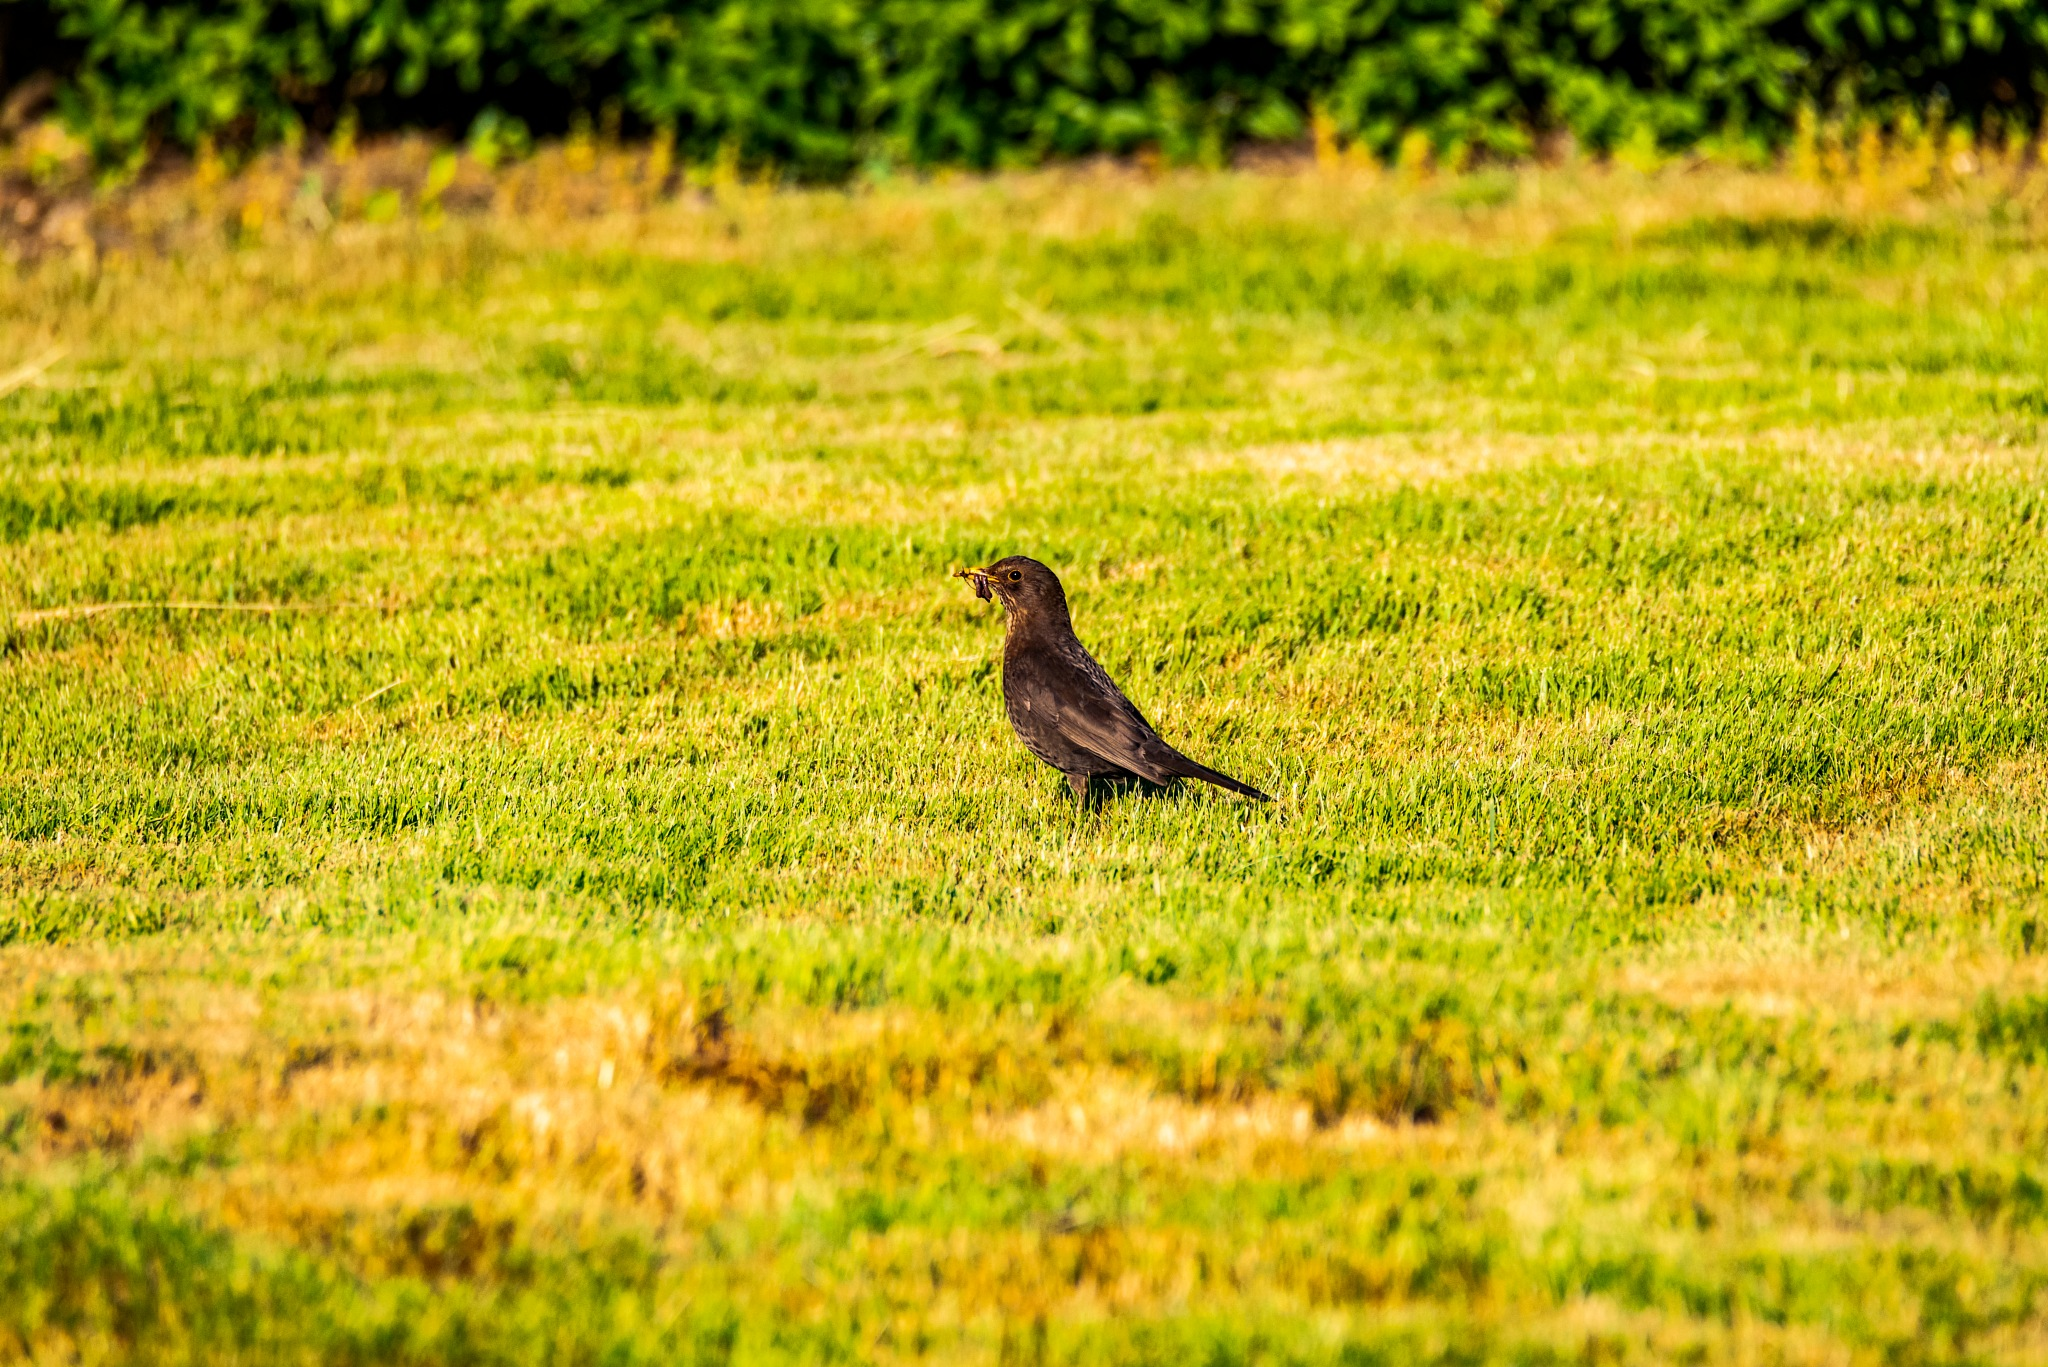 Female blackbird found a worm by Steen Skov